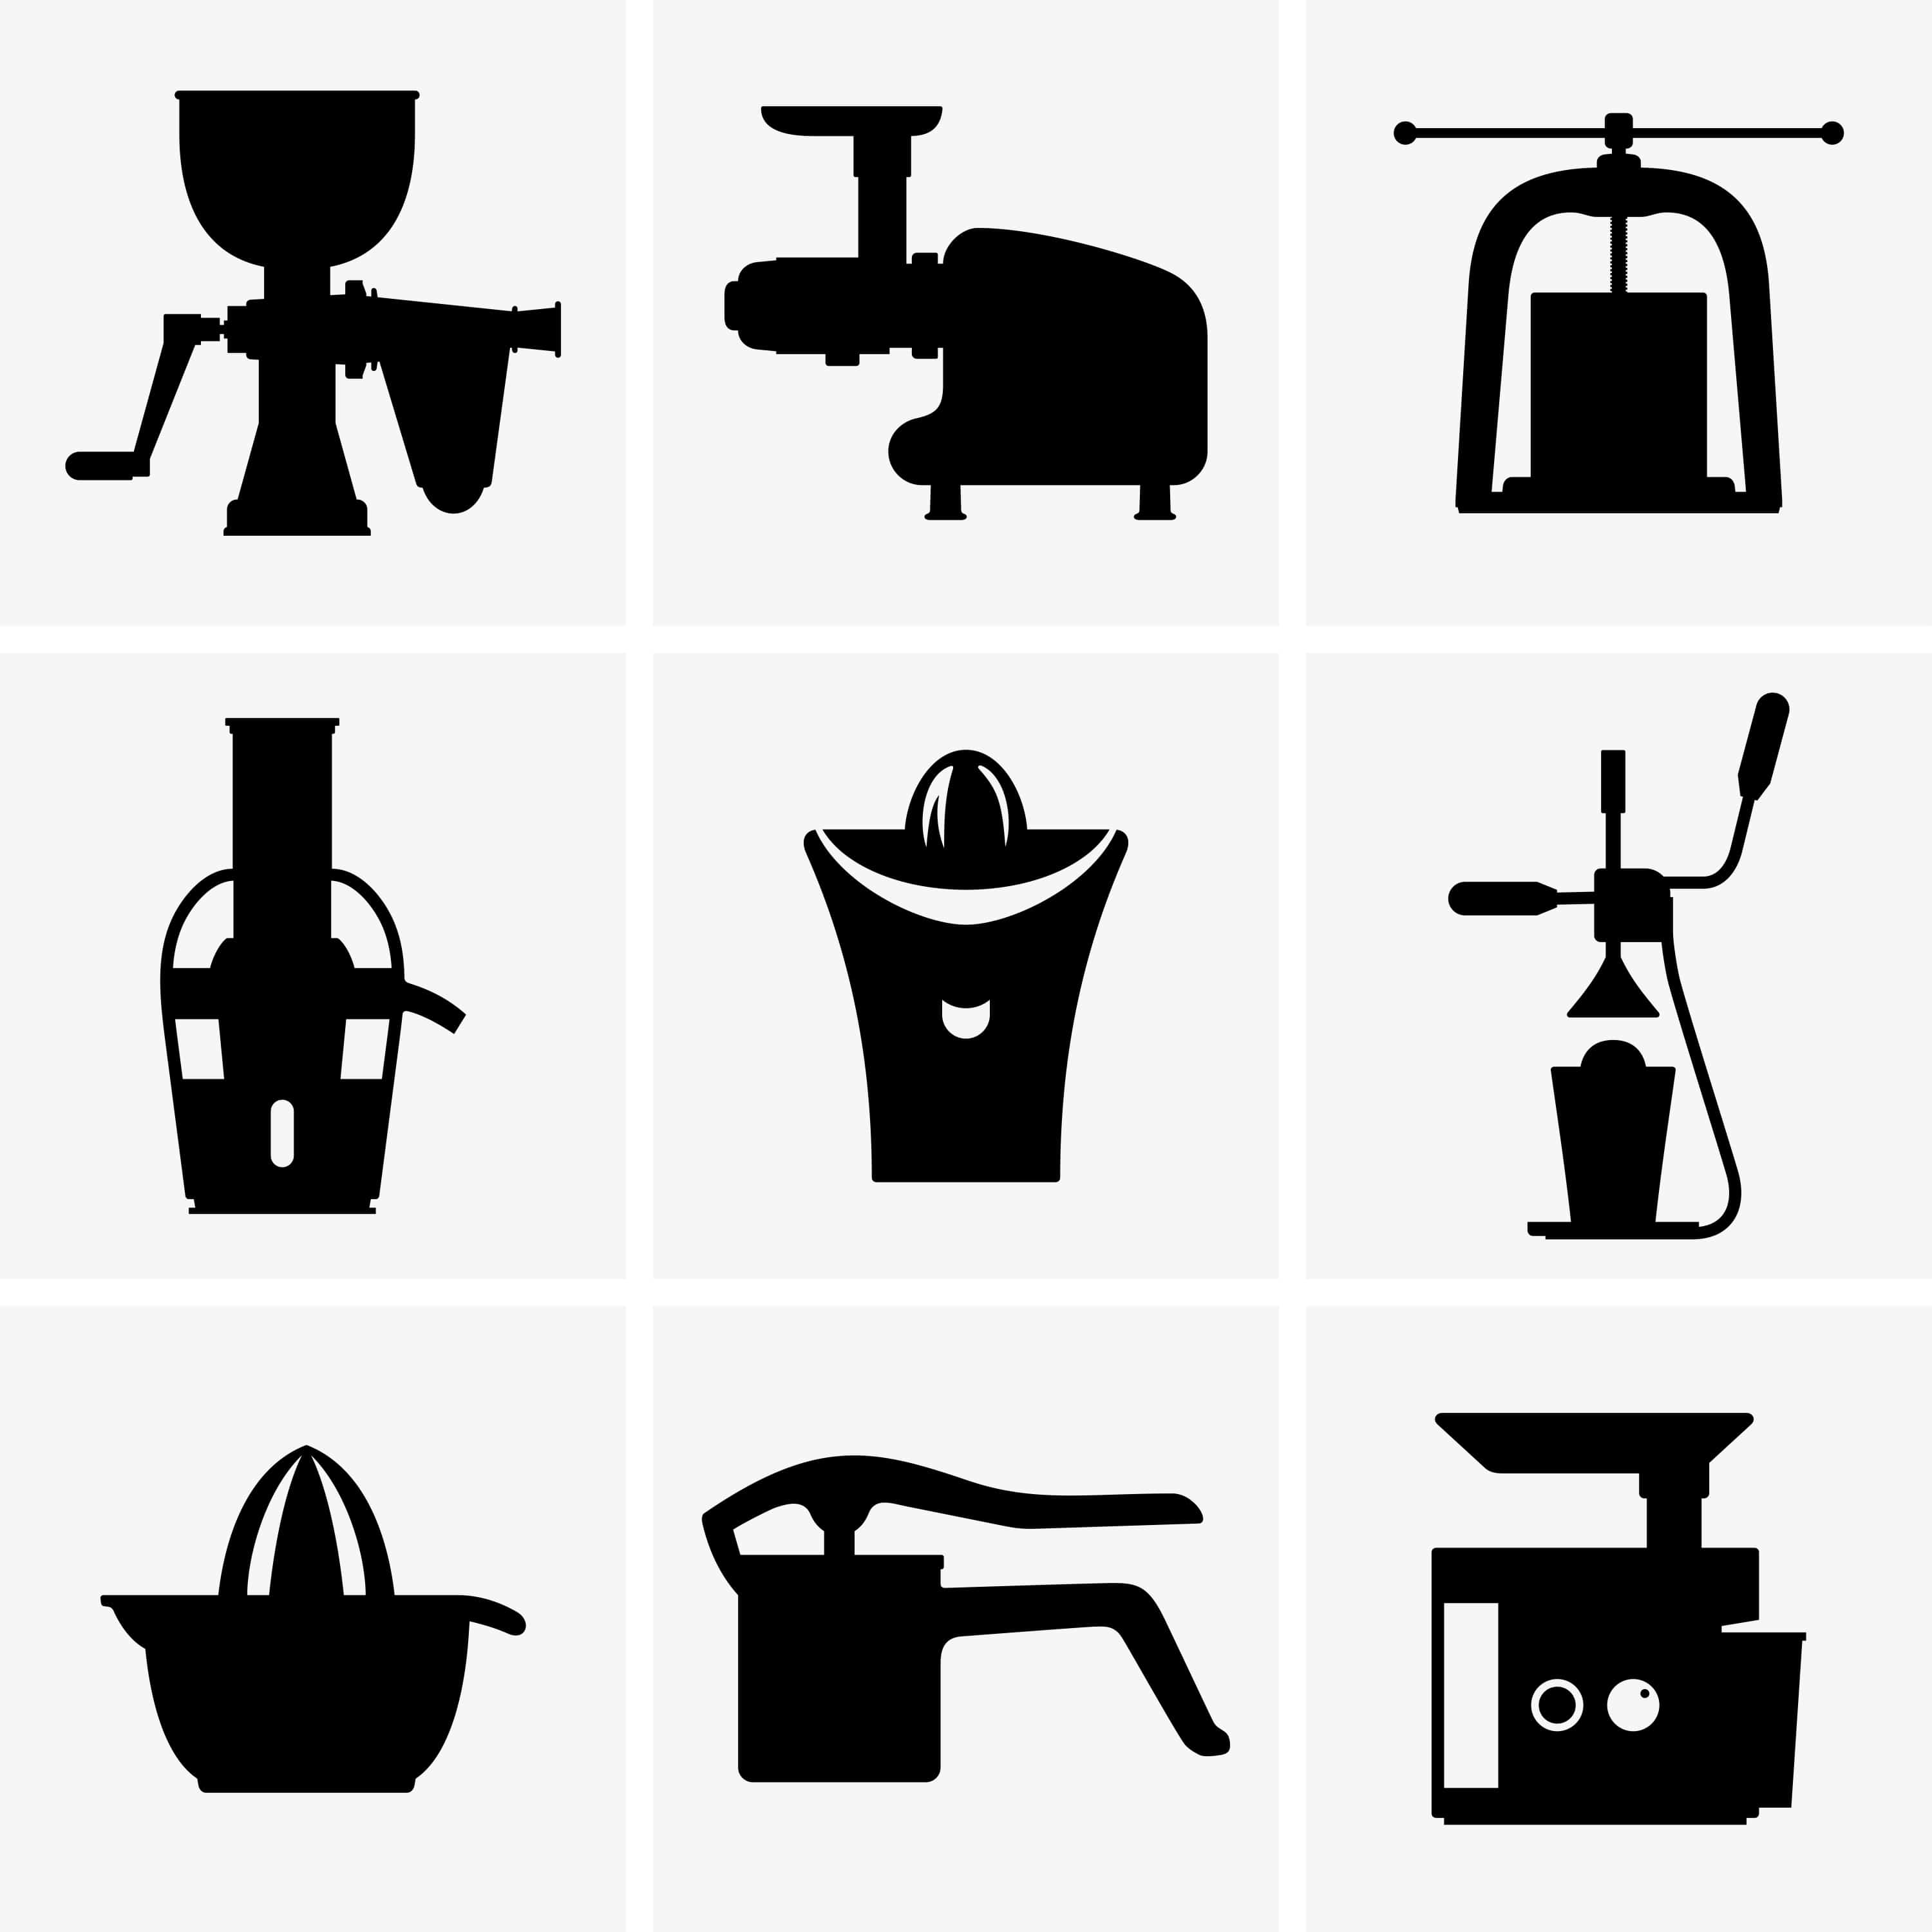 Black and white image of various juicers